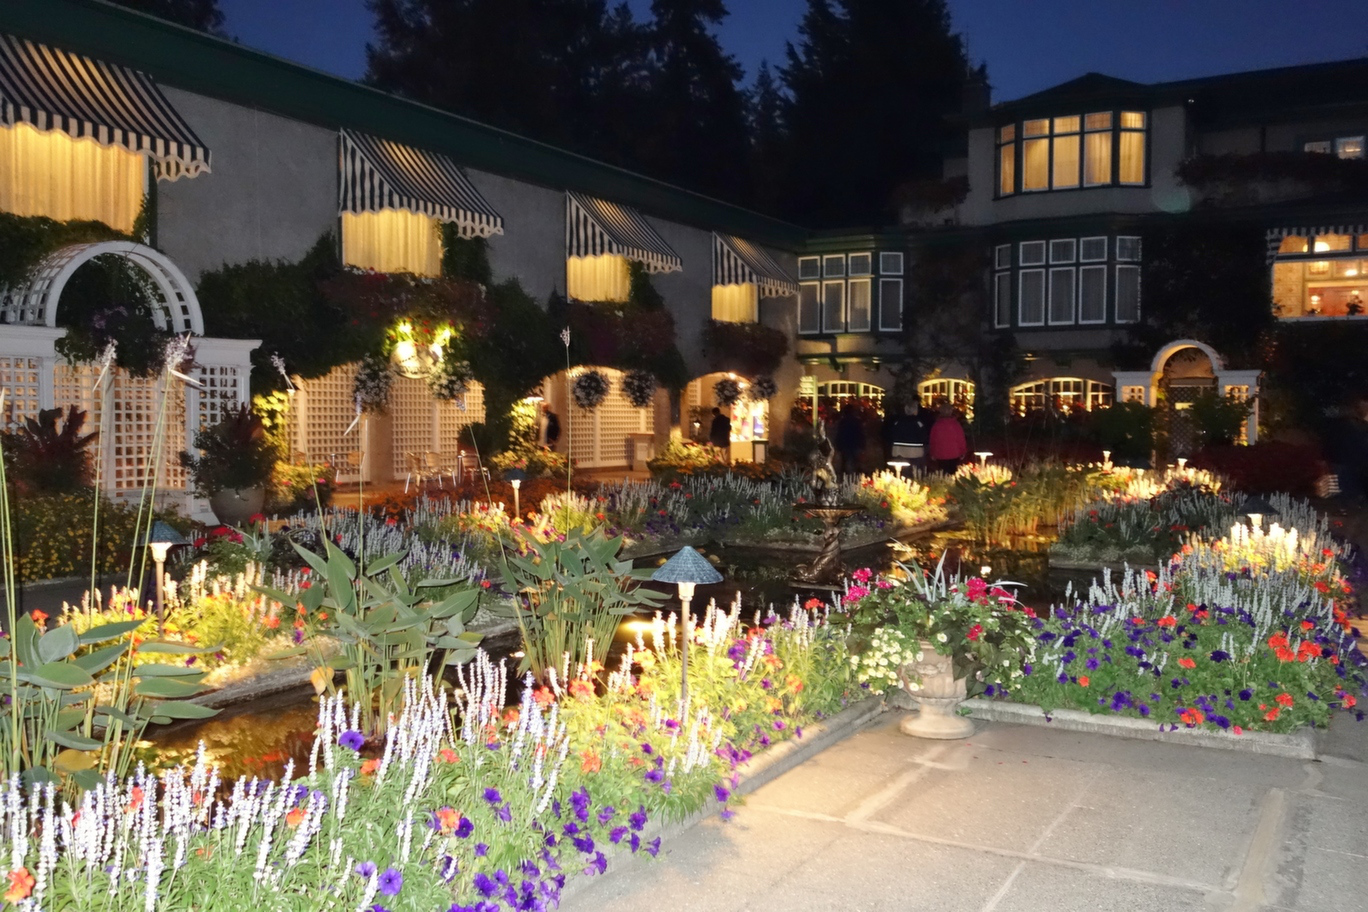 Butchart Gardens - Beyond the Port in Victoria, B.C.